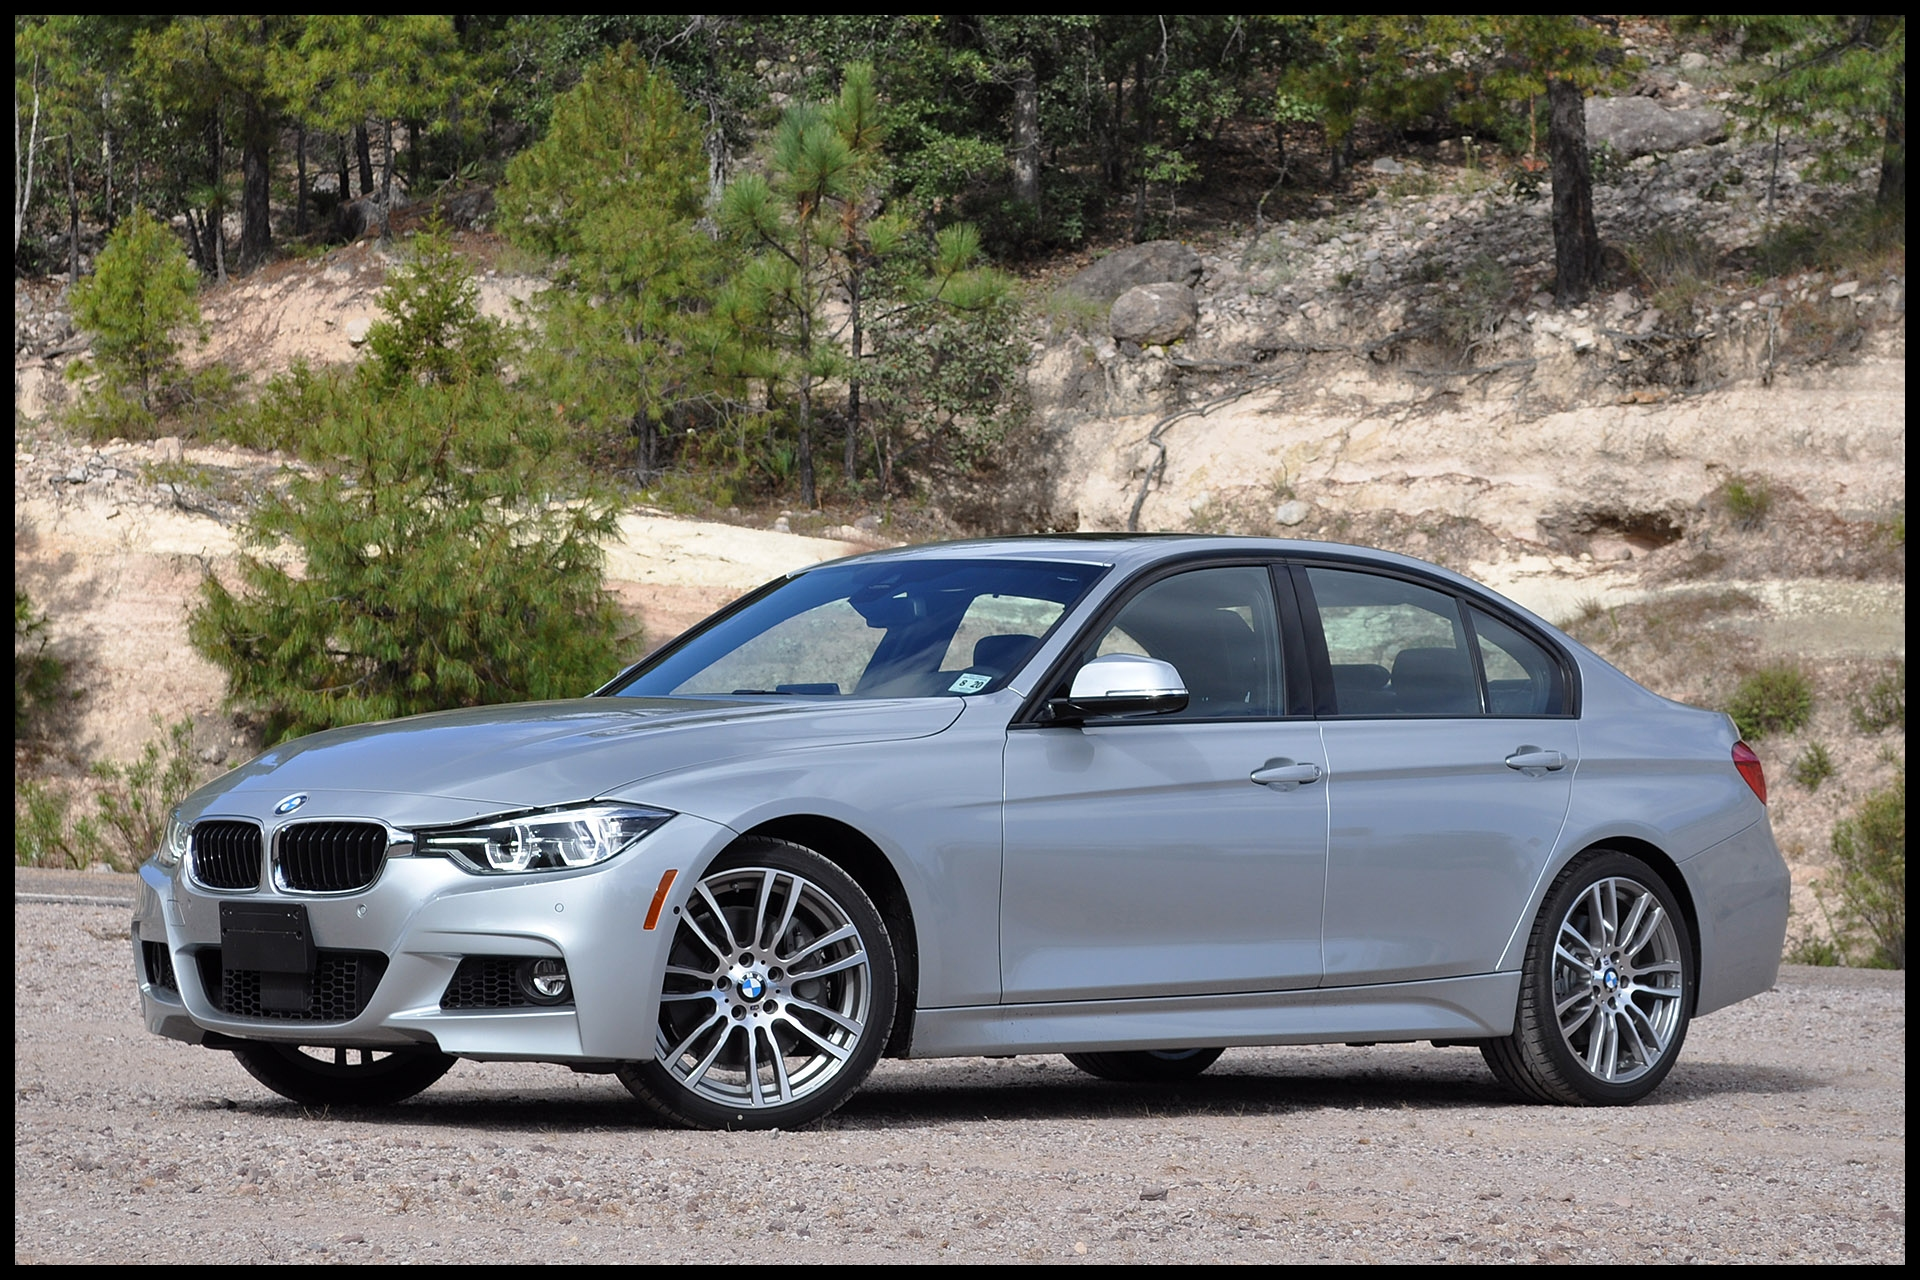 Certified Pre Owned Bmw BMW 3 Series Prices Reviews and New Model Information